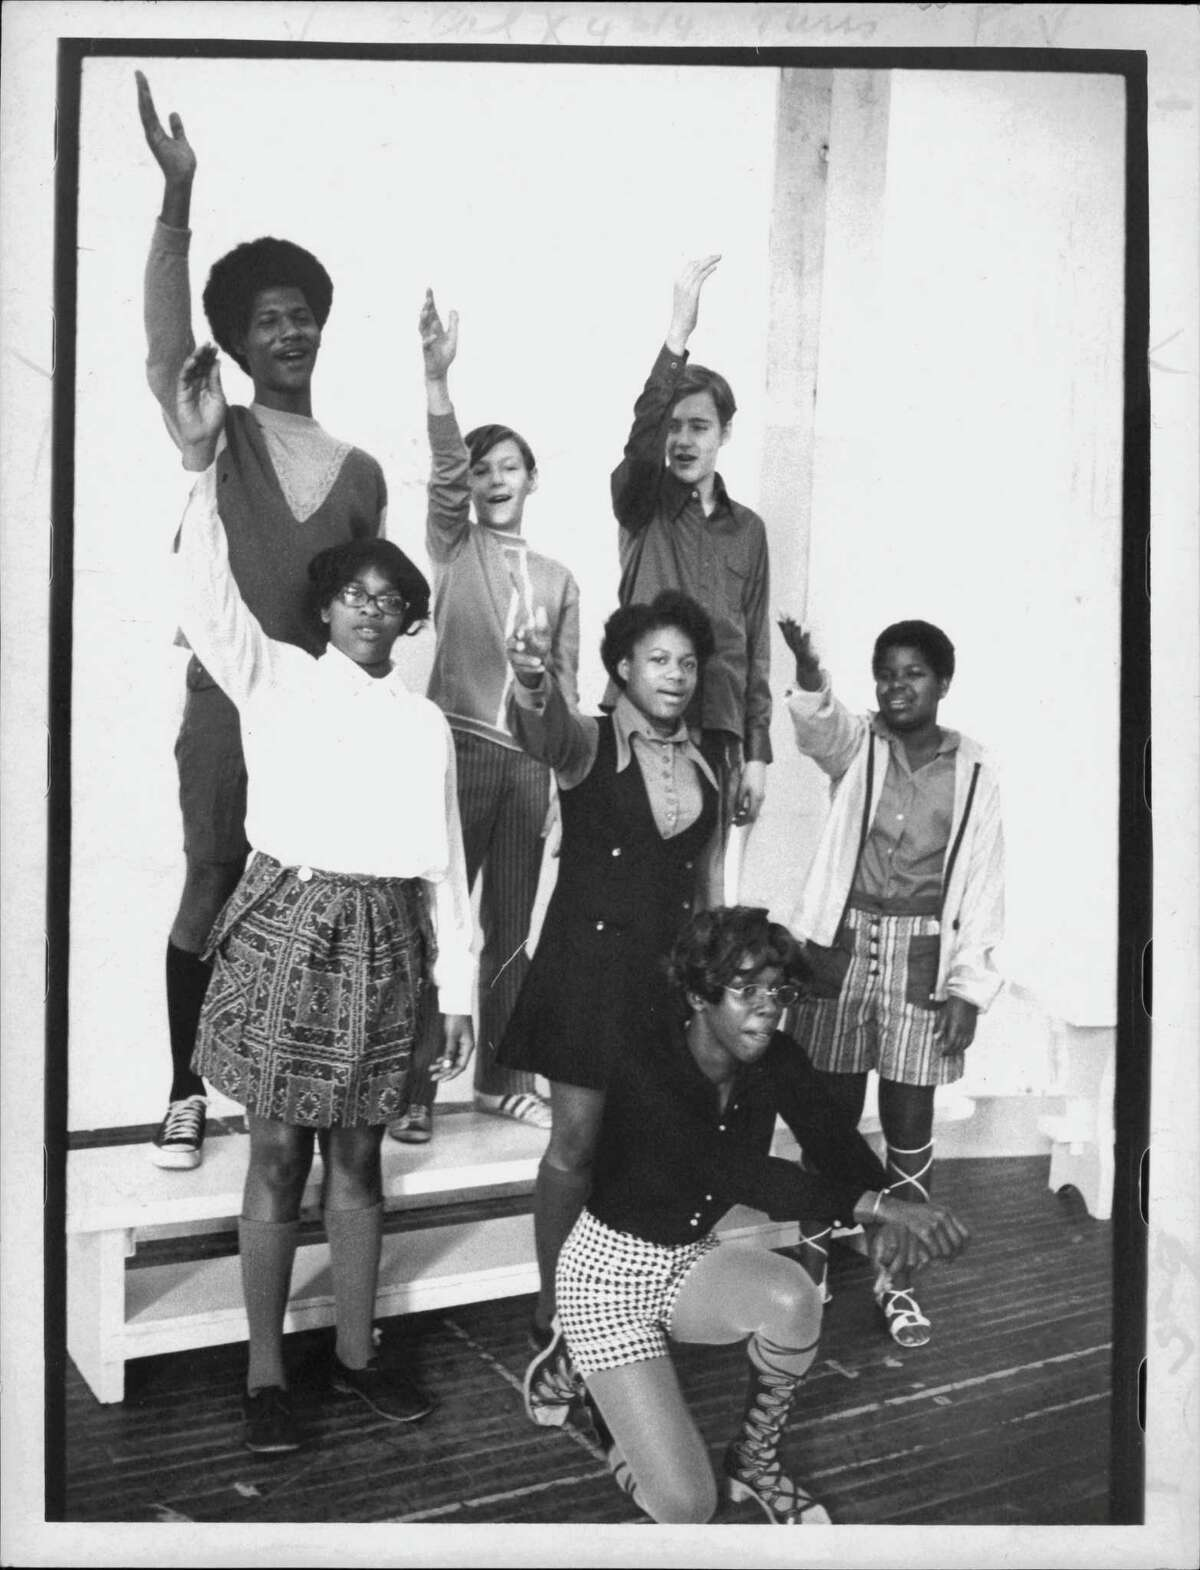 Philip Livingston Junior High School, Albany, New York - Students performing: Front: Lilia Byrd; Second row: Kathy Johnson, Regina Frazier and Linda Watkins; Third row: William Johnson, Doug Moore, and Robert Graham. August 20, 1971 (Roberta Smith/Times Union Archive)